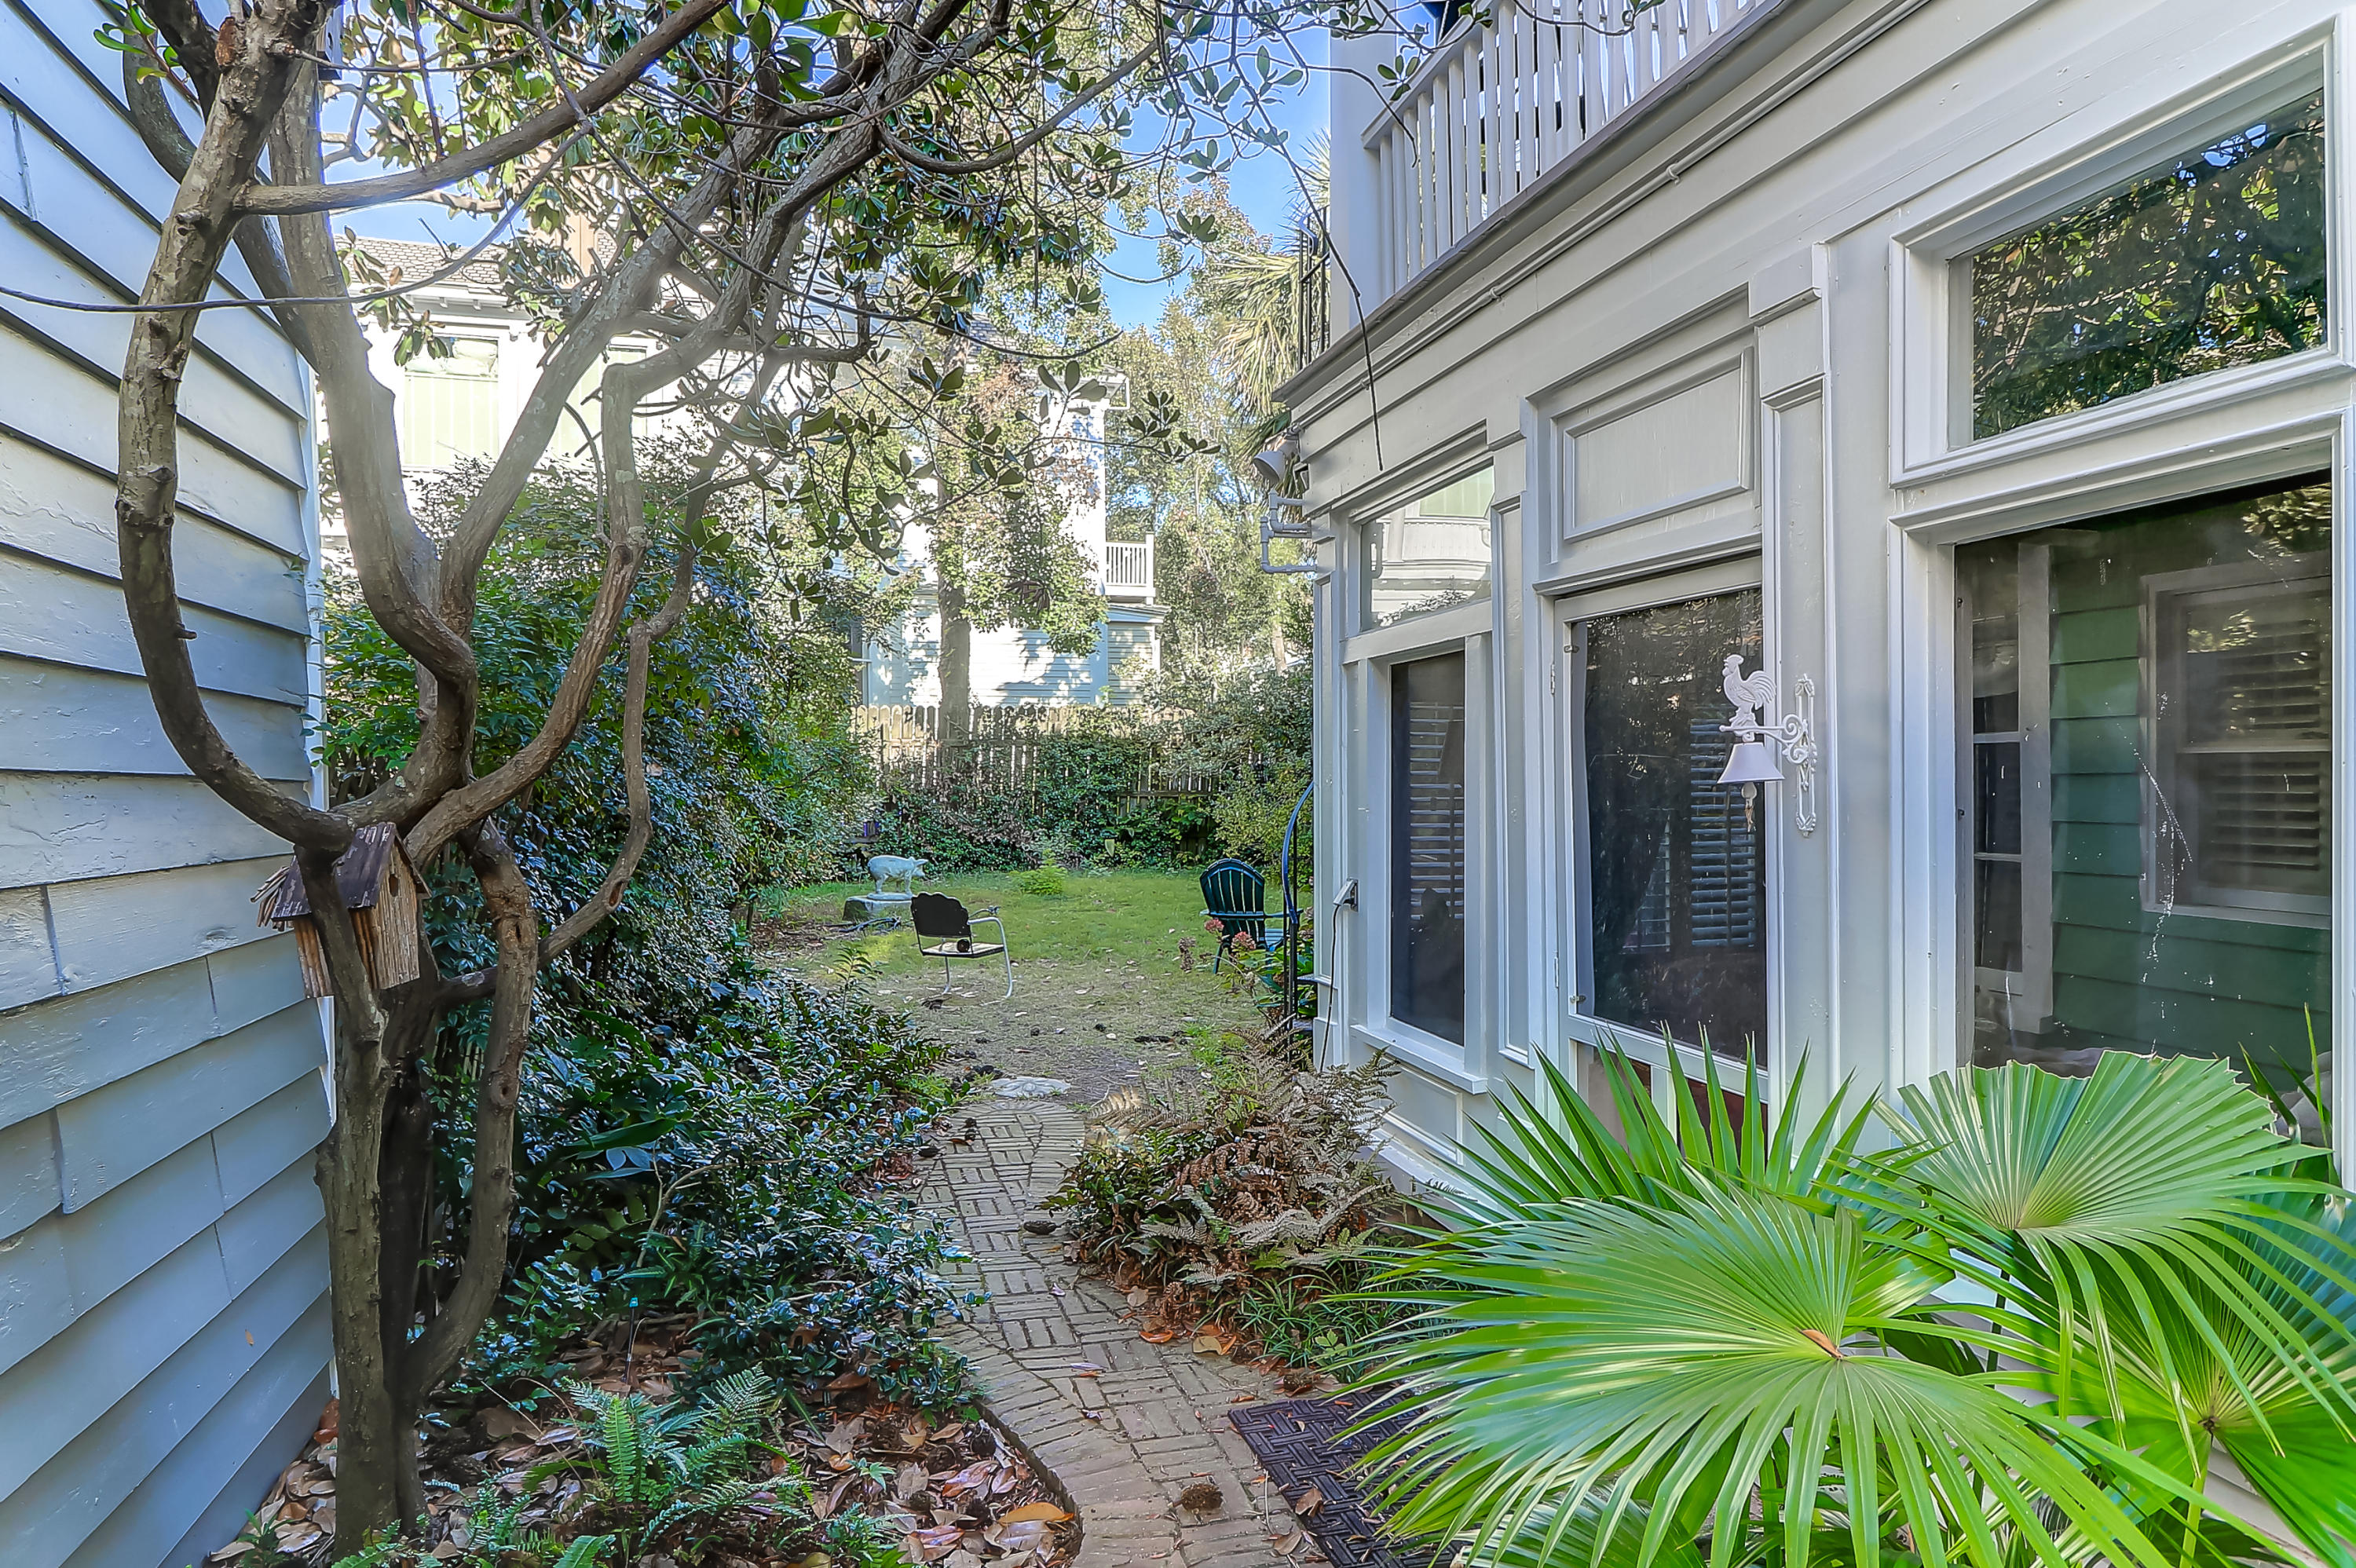 Home for sale 158 Wentworth Street, Harleston Village, Downtown Charleston, SC